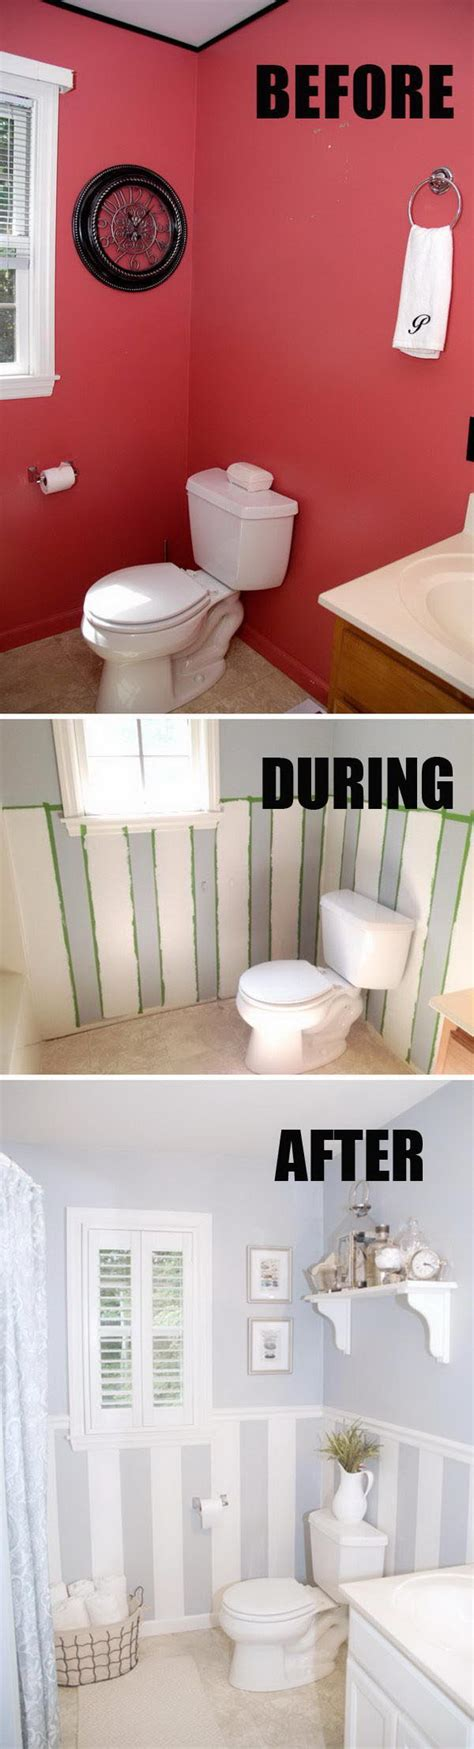 Bathroom Makeovers Diy by 50 Gorgeous Bathroom Makeovers With Before And After